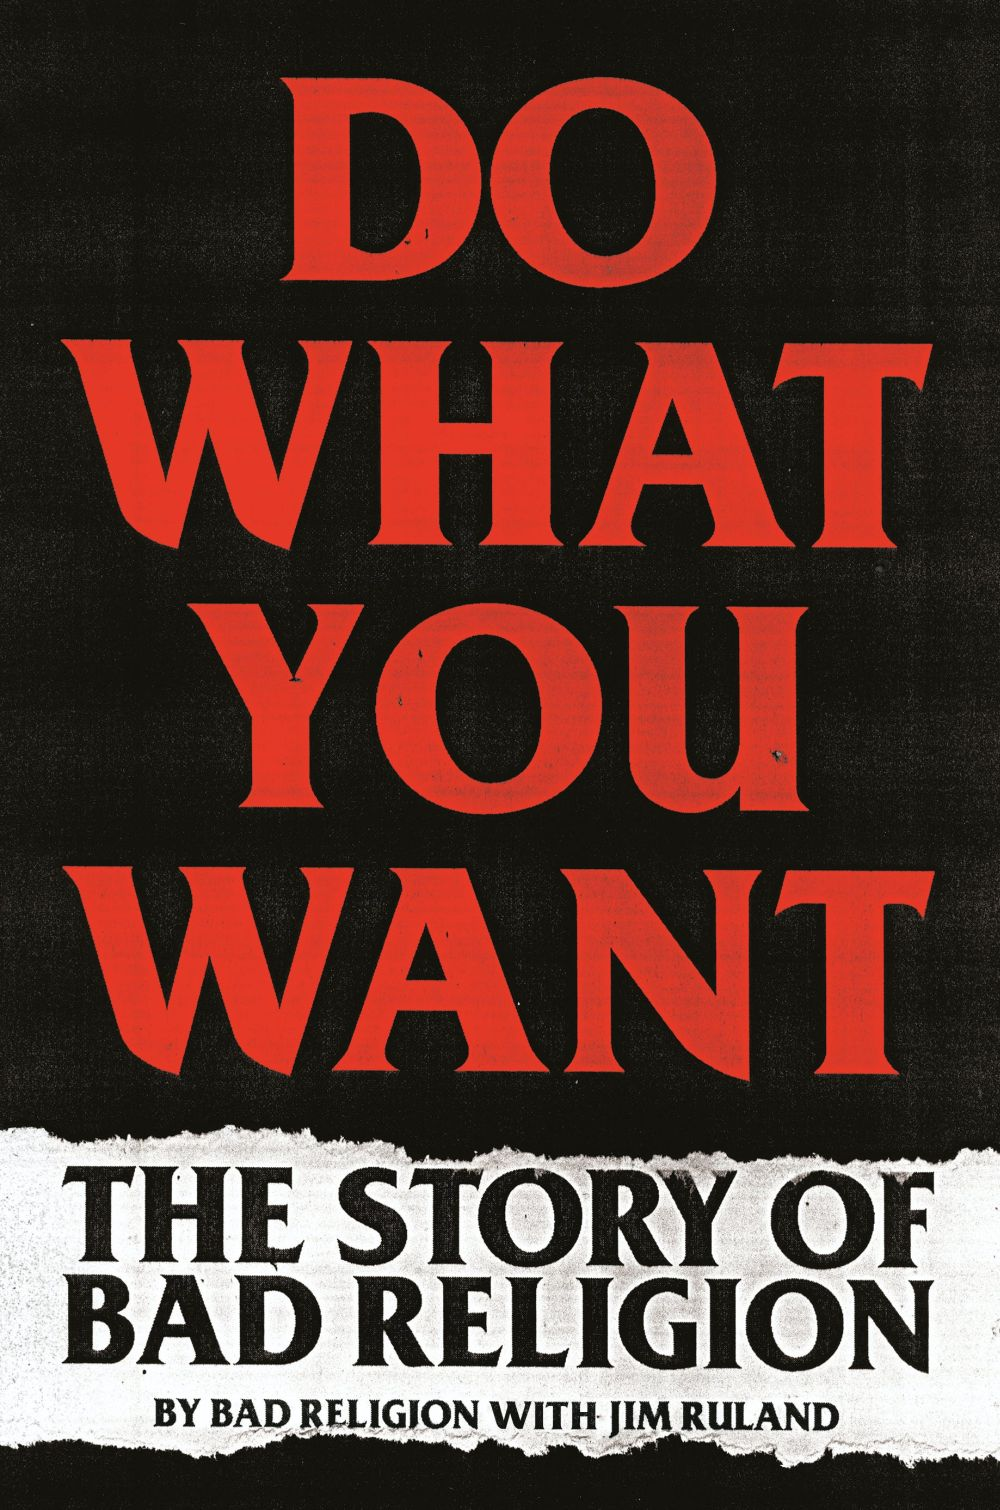 Bad Religion - Do What You Want: The Story Of Bad Religion (HC) - Book - New